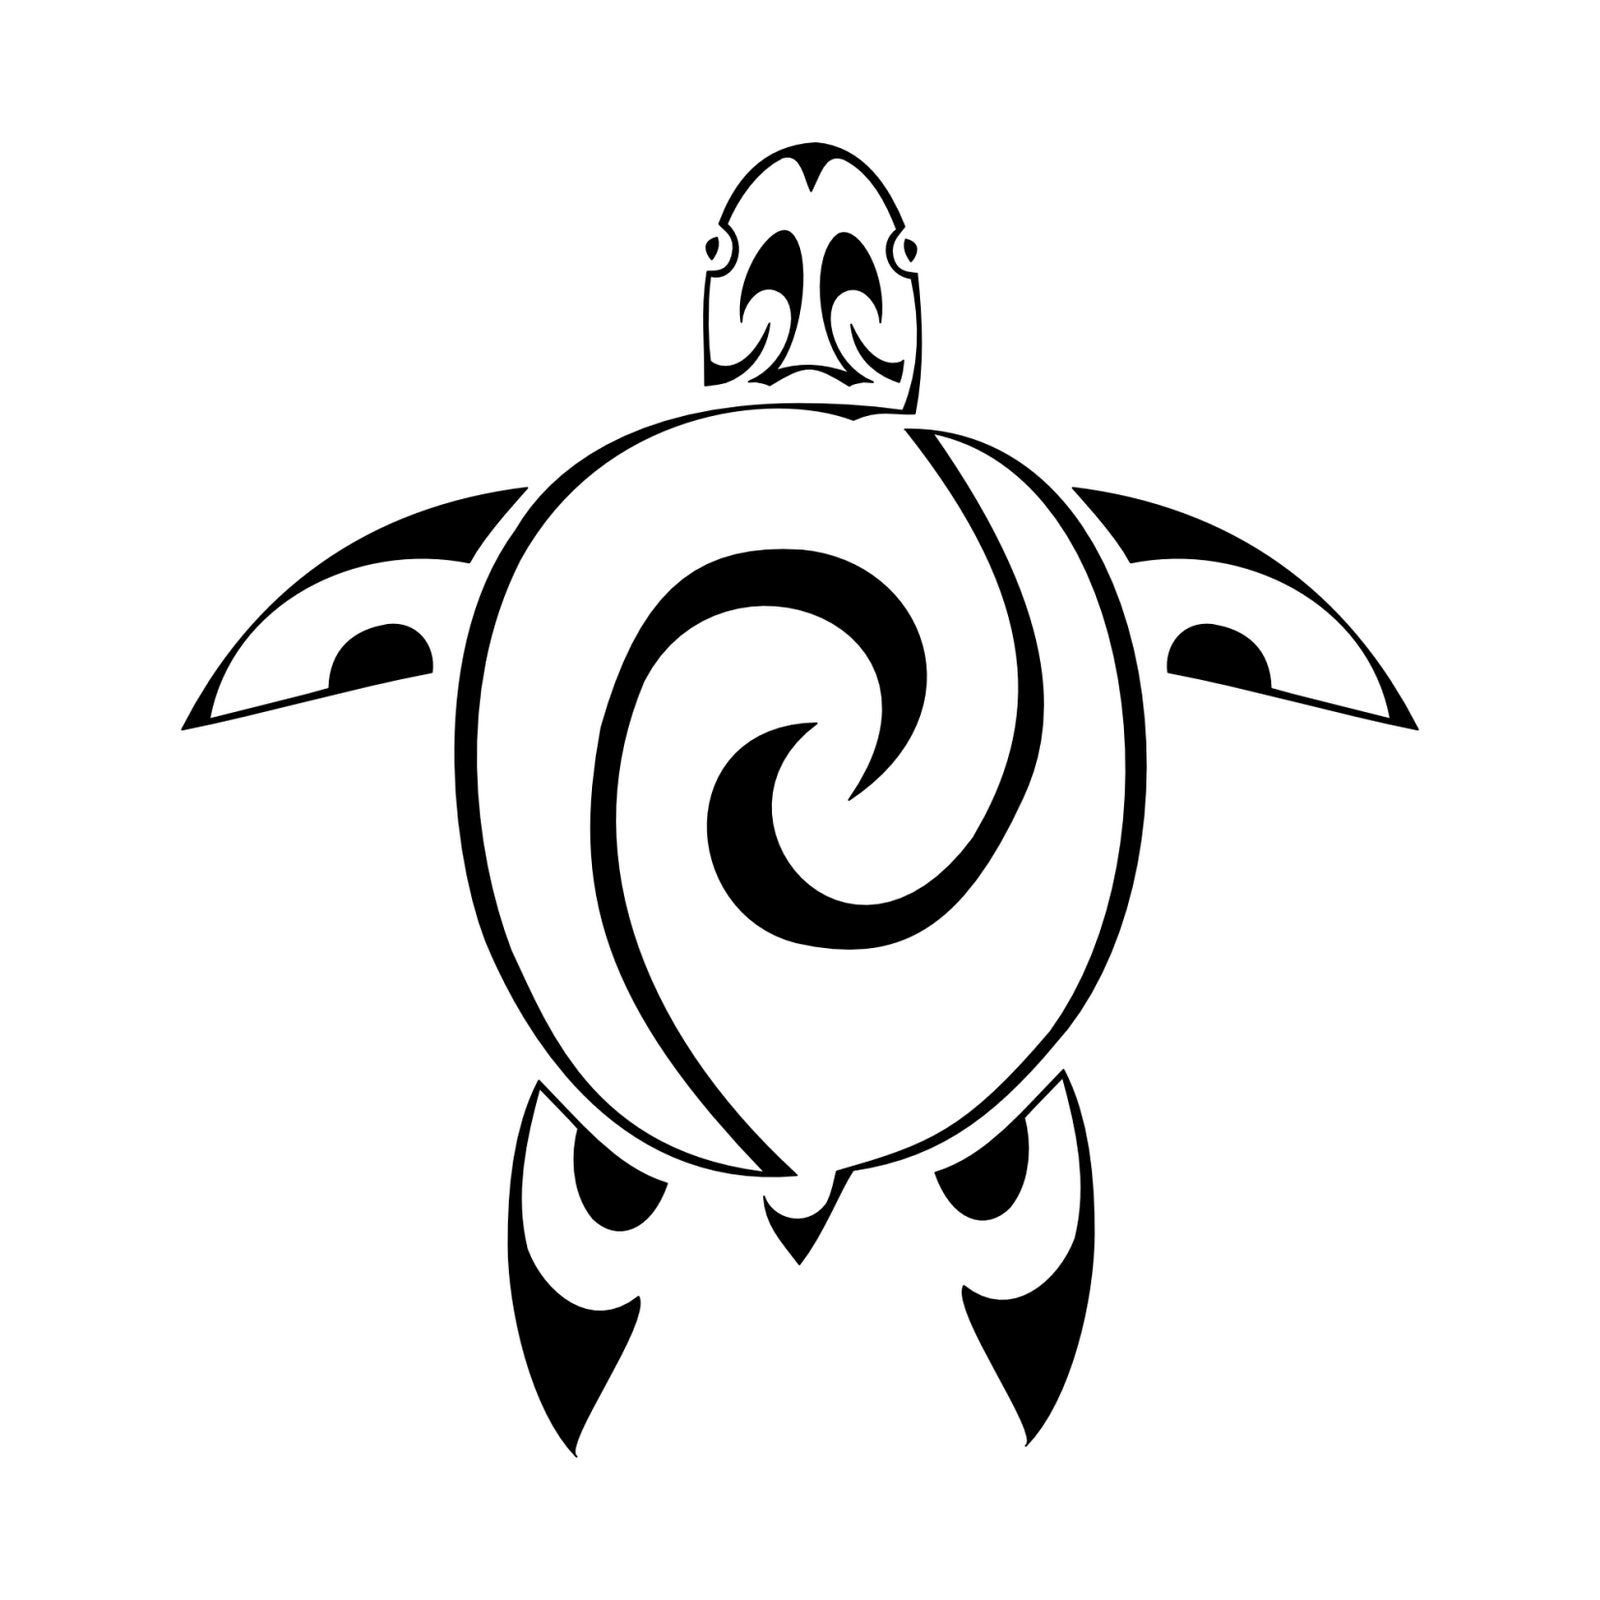 hawaiian turtle coloring pages hawaiian turtle outline free download on clipartmag turtle hawaiian coloring pages